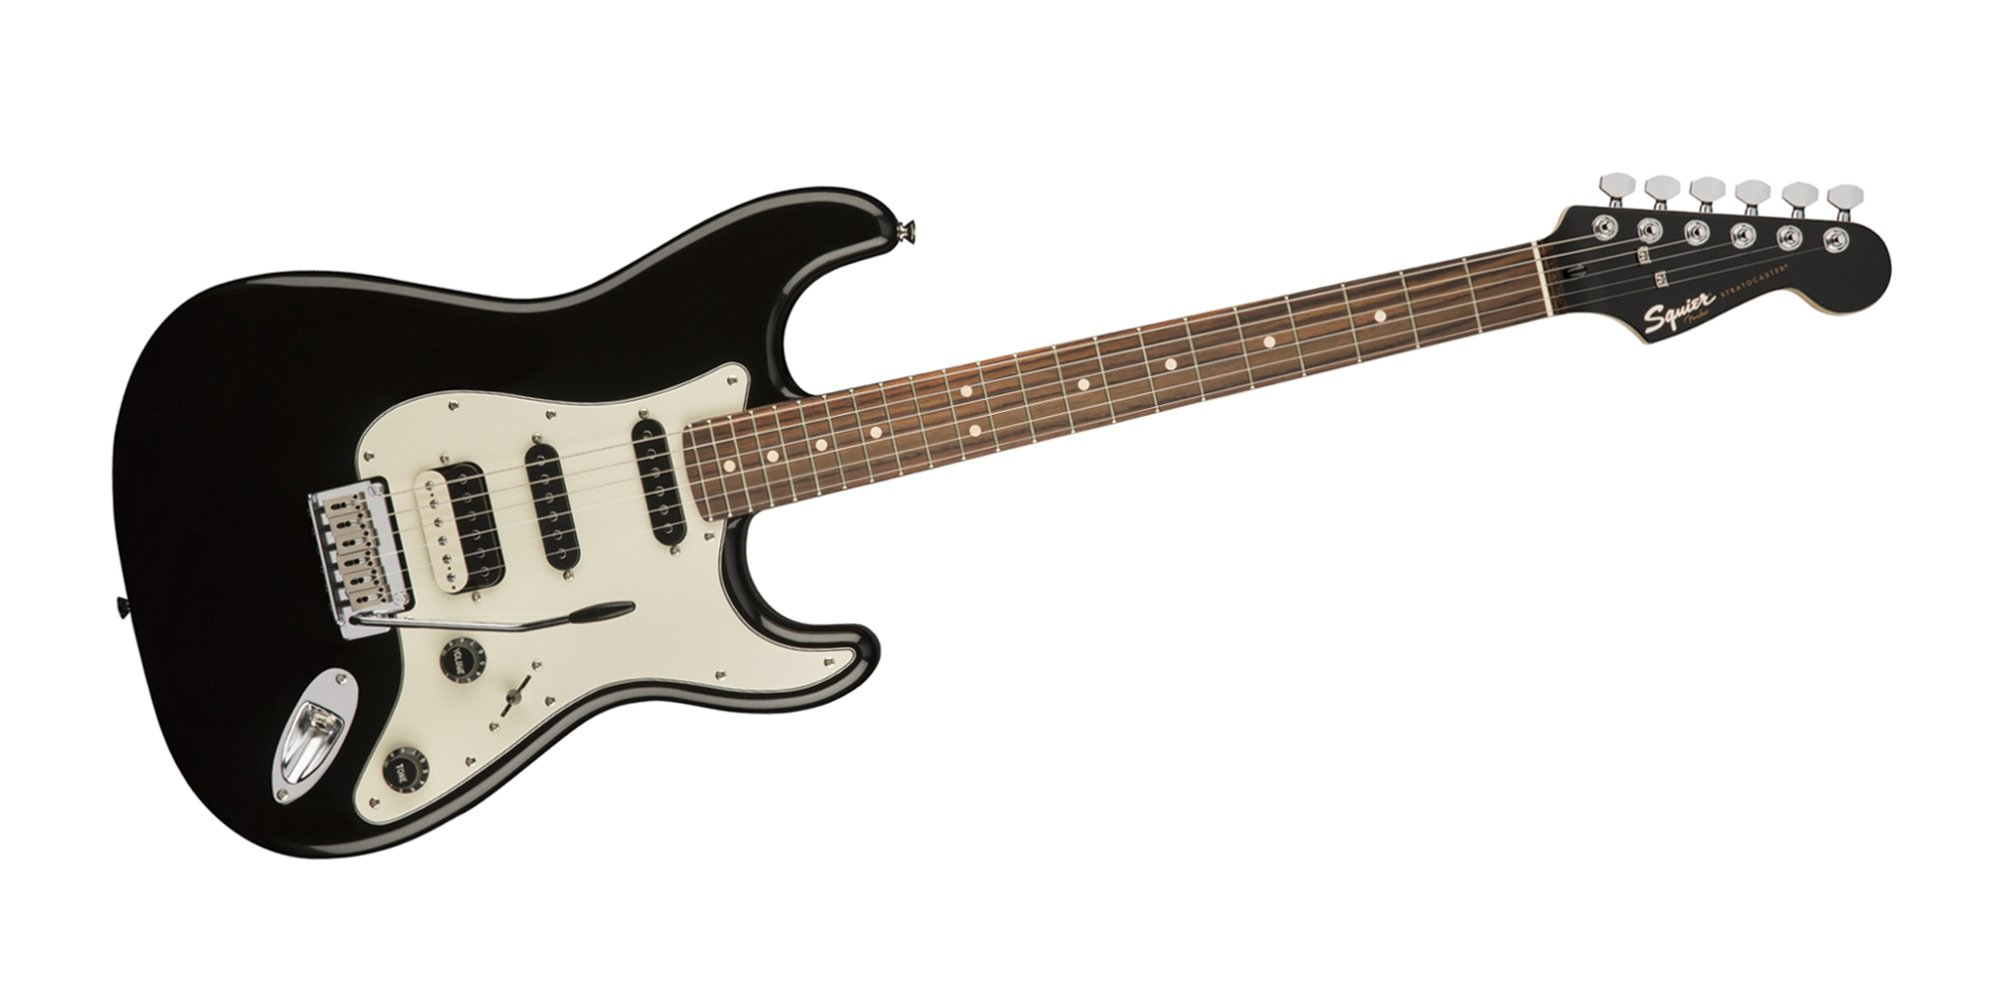 Squier STRAT-CONTEMP-HSS-RW Solidbody Electric Guitar With